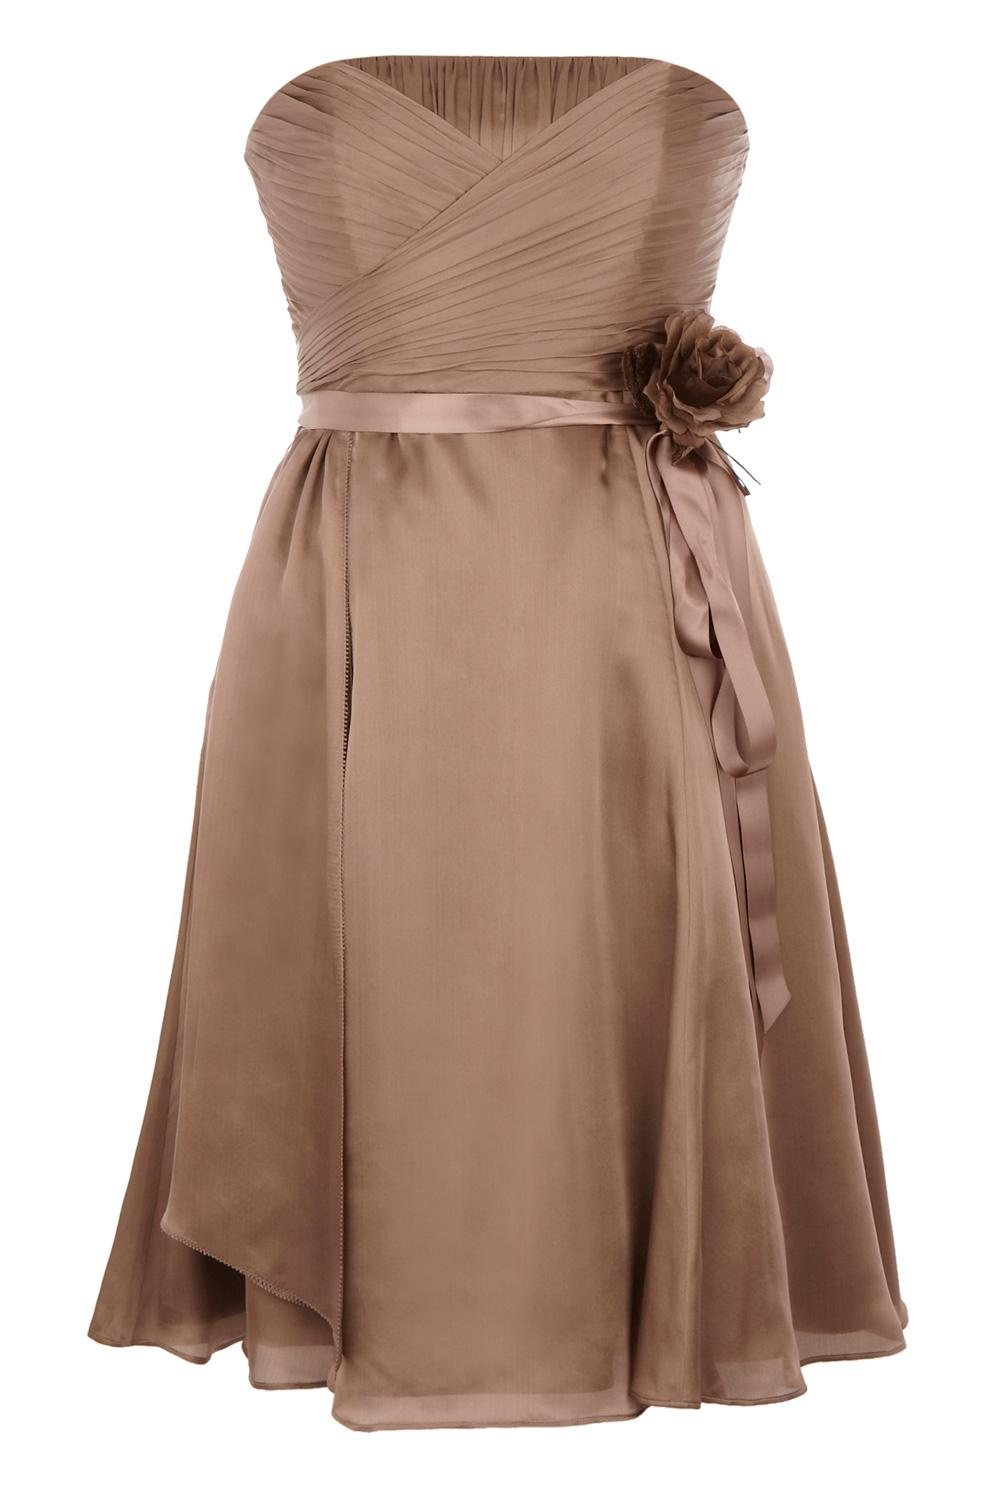 nude colours. taupe brown